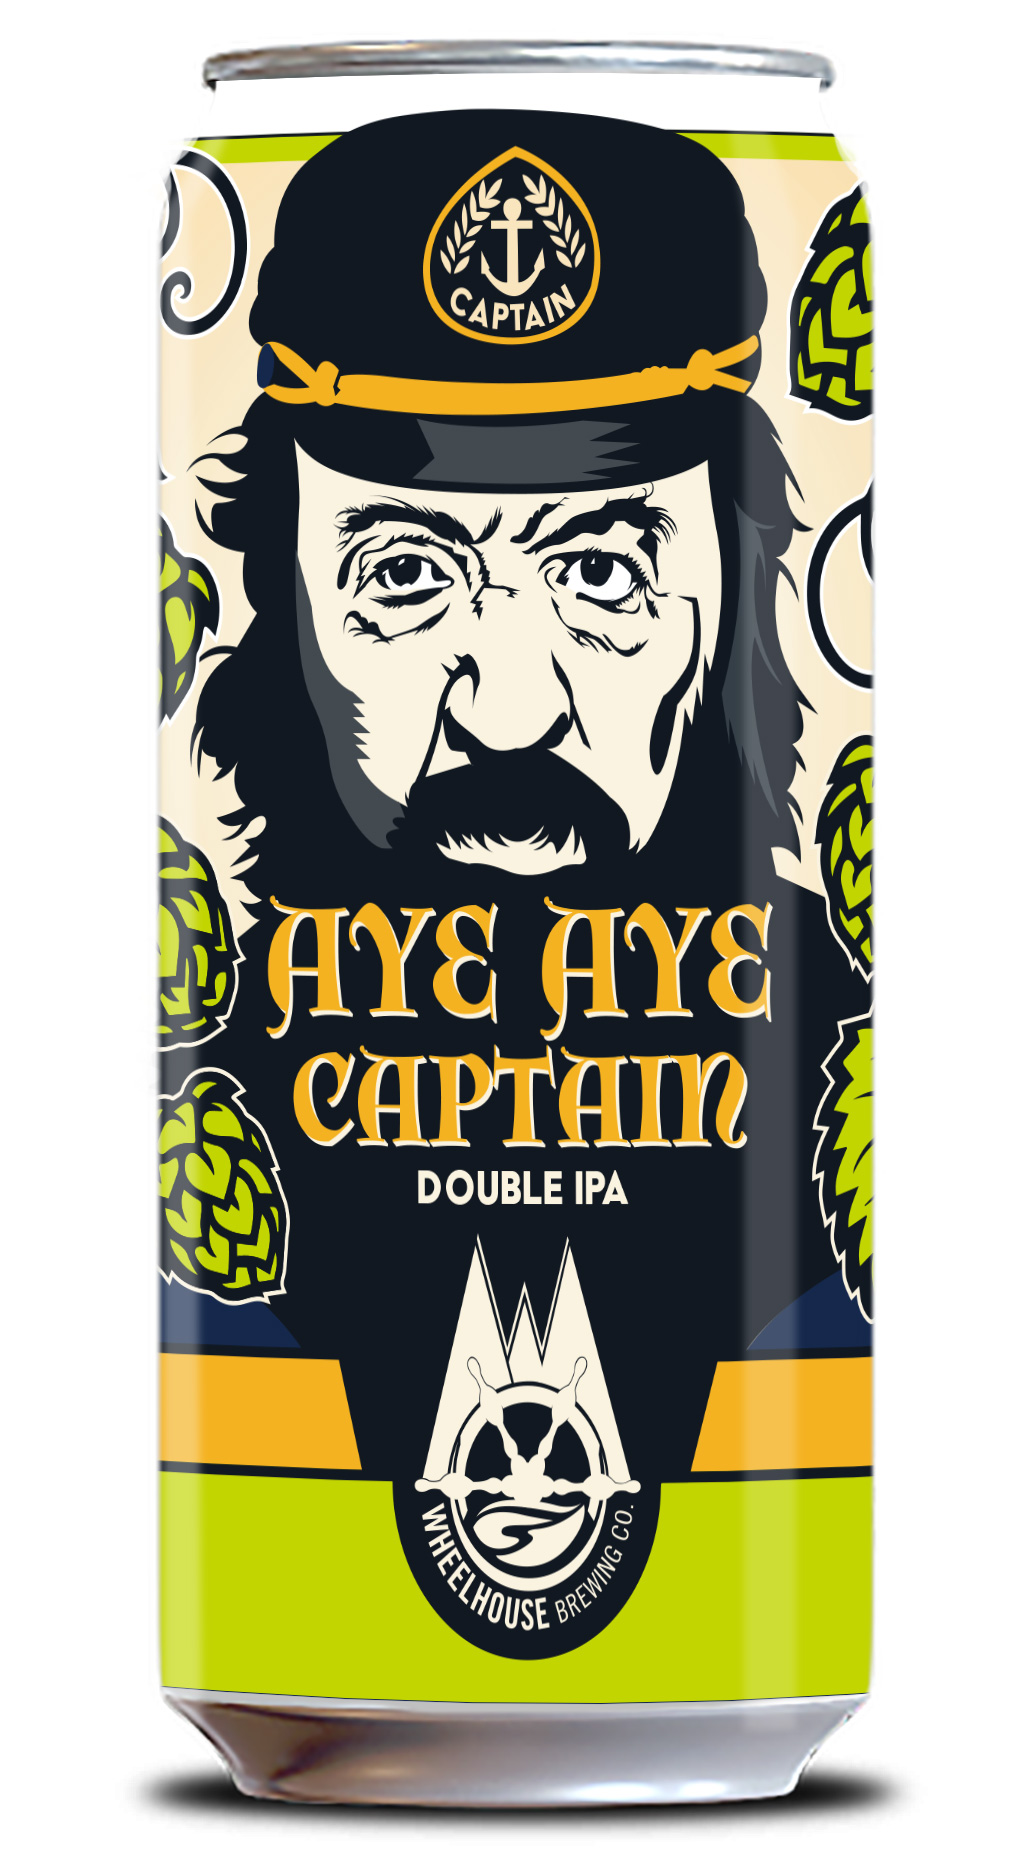 Aye Aye Captain beer label design